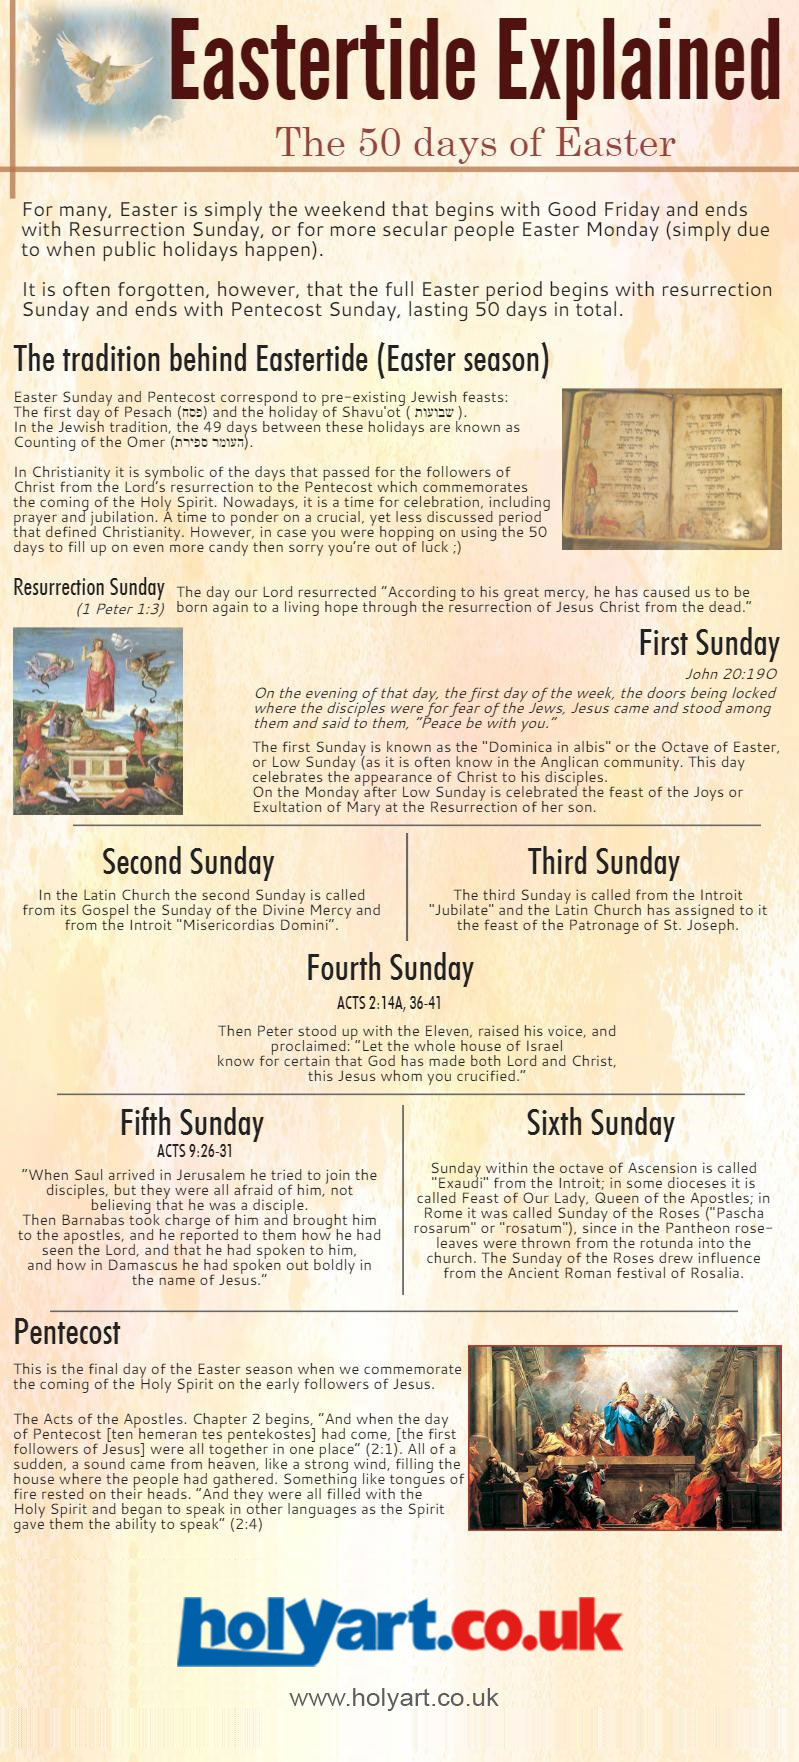 Eastertide Explained - The 50 days of Easter